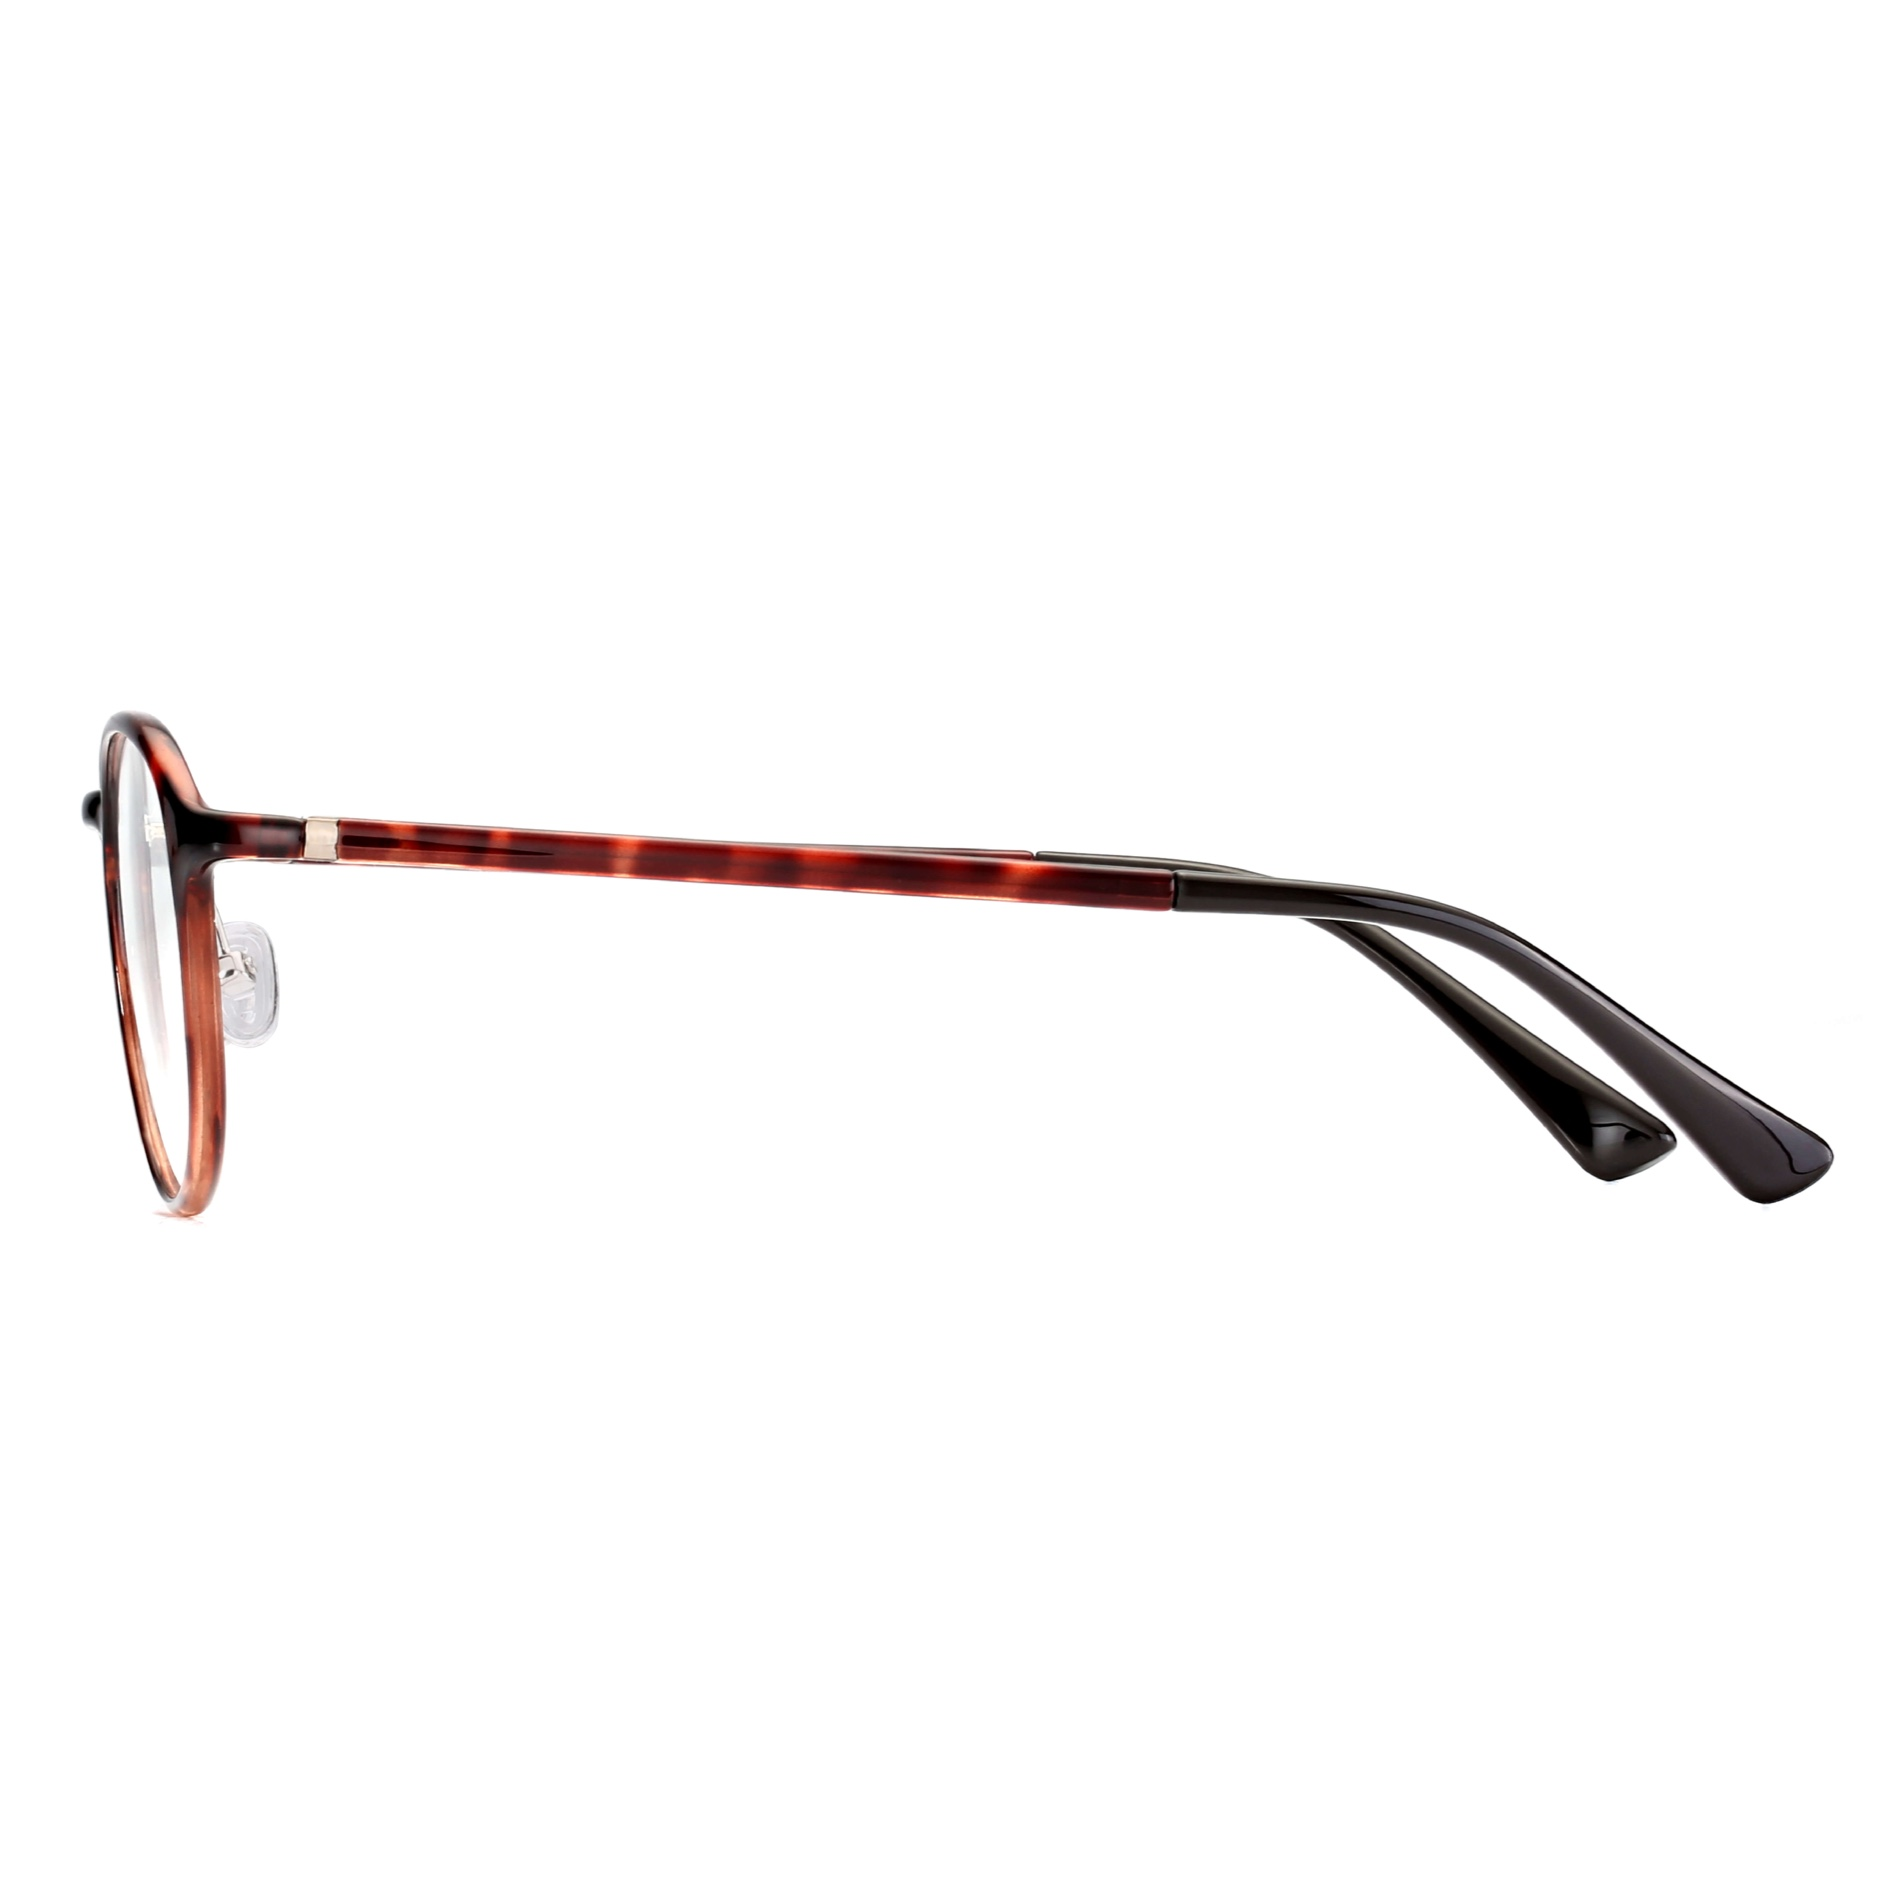 Ladies Classic Style ß-Plastic Ultralight Eyeglass Frame Manufacturers, Ladies Classic Style ß-Plastic Ultralight Eyeglass Frame Factory, Supply Ladies Classic Style ß-Plastic Ultralight Eyeglass Frame